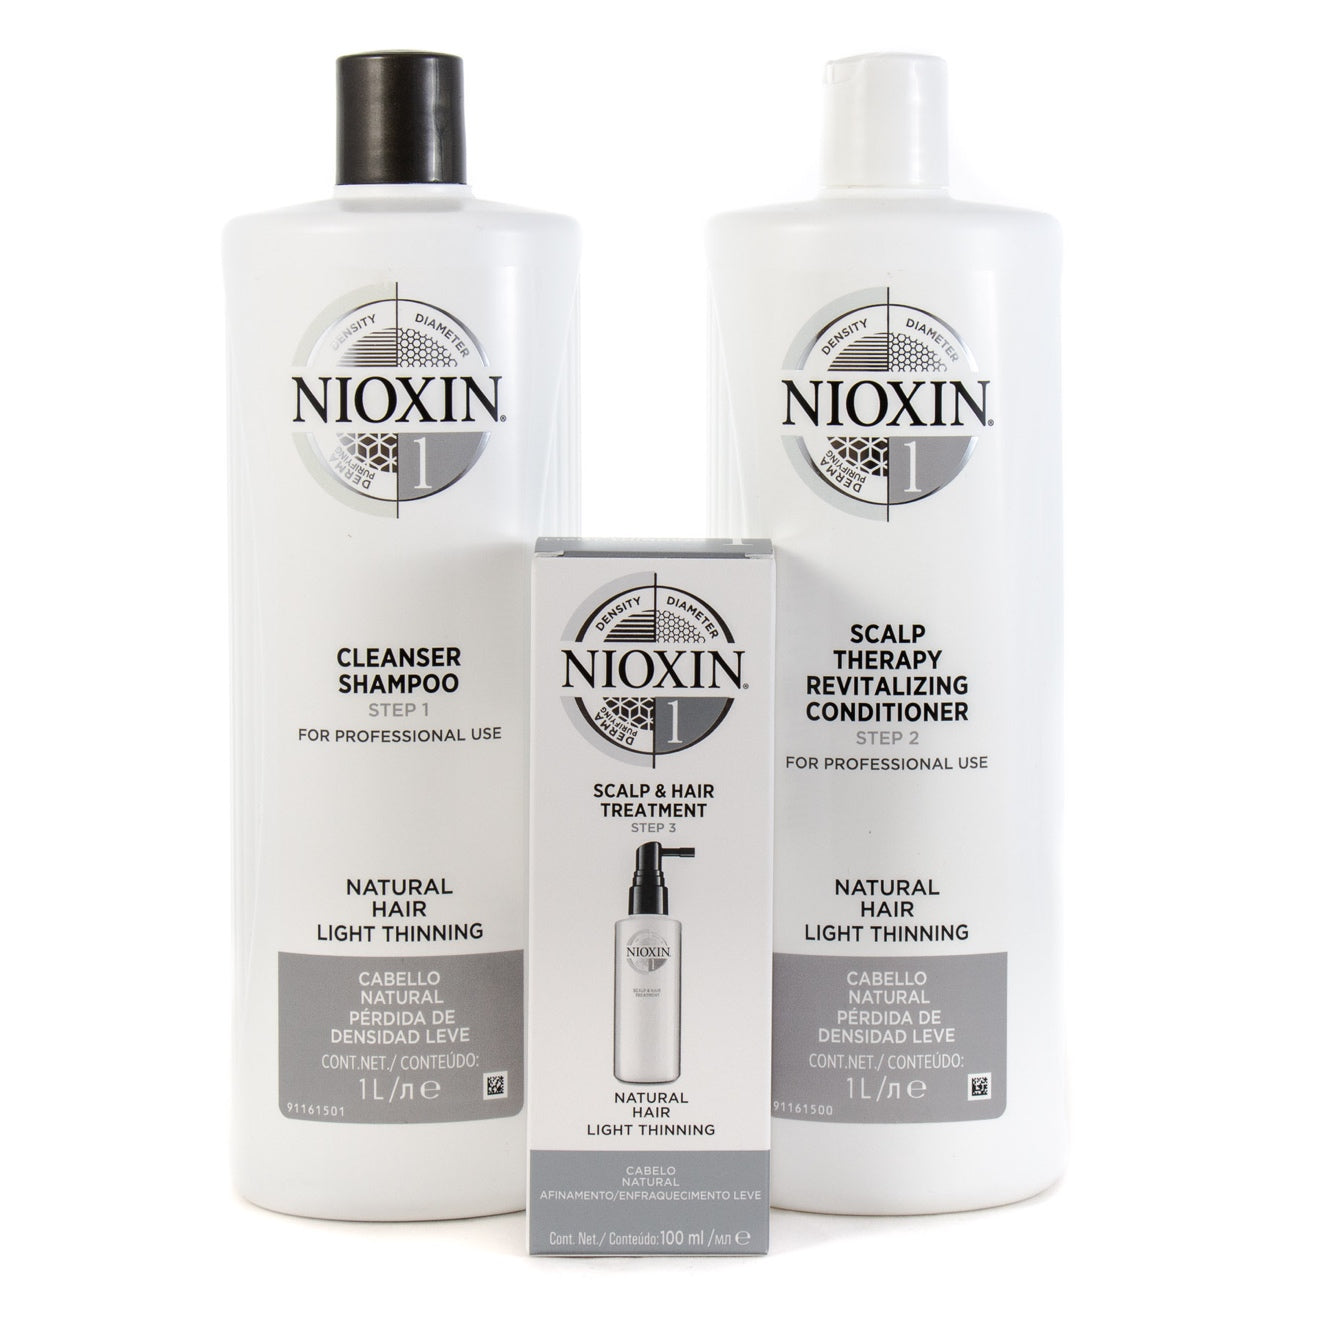 Nioxin System 1 Cleanser Shampoo And Scalp Revitaliser Conditioner 1000ml Plus Treatment